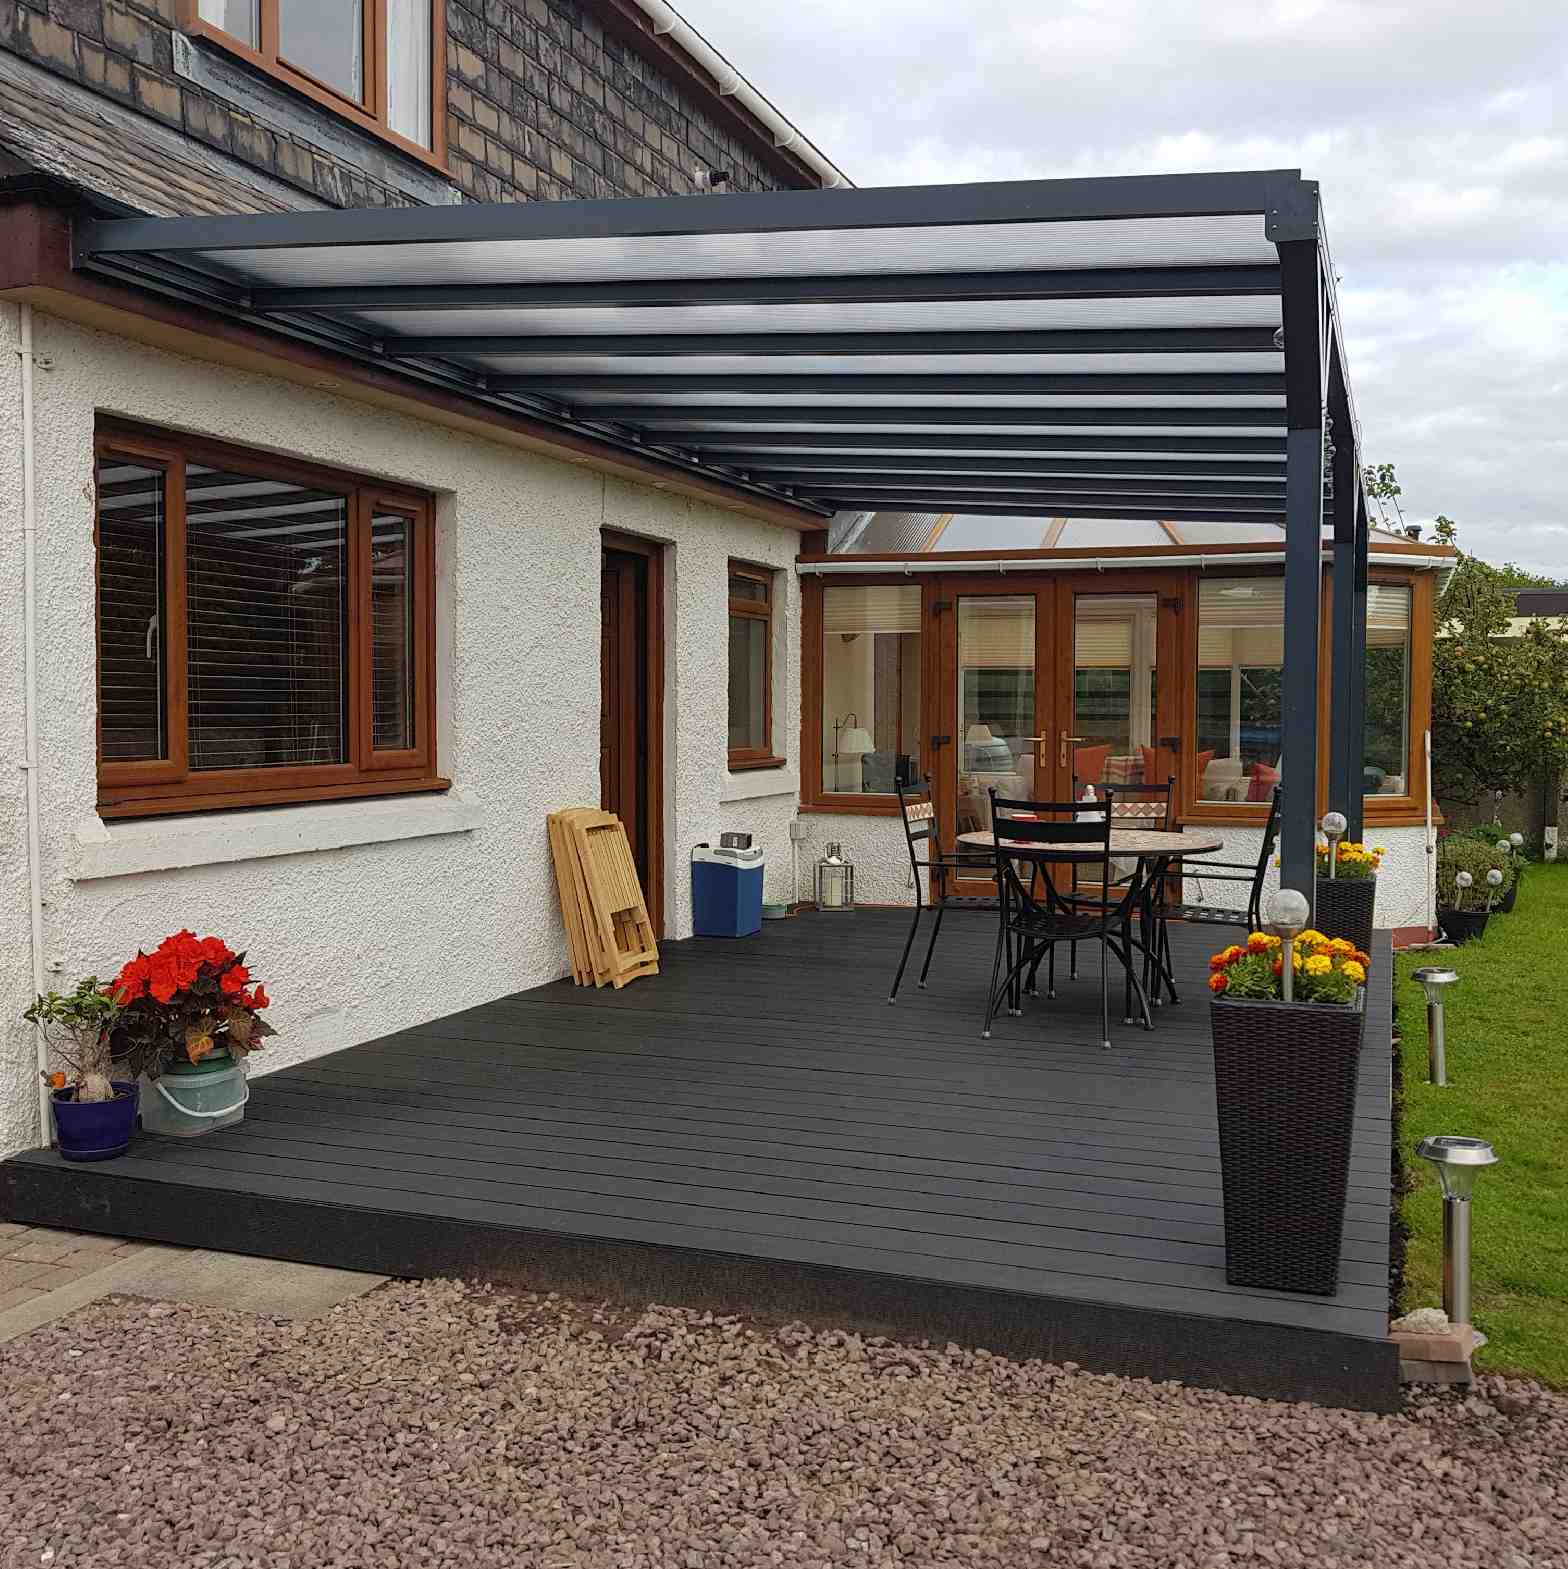 Buy Omega Verandah, Anthracite Grey, 16mm Polycarbonate Glazing - 9.5m (W) x 2.5m (P), (5) Supporting Posts online today